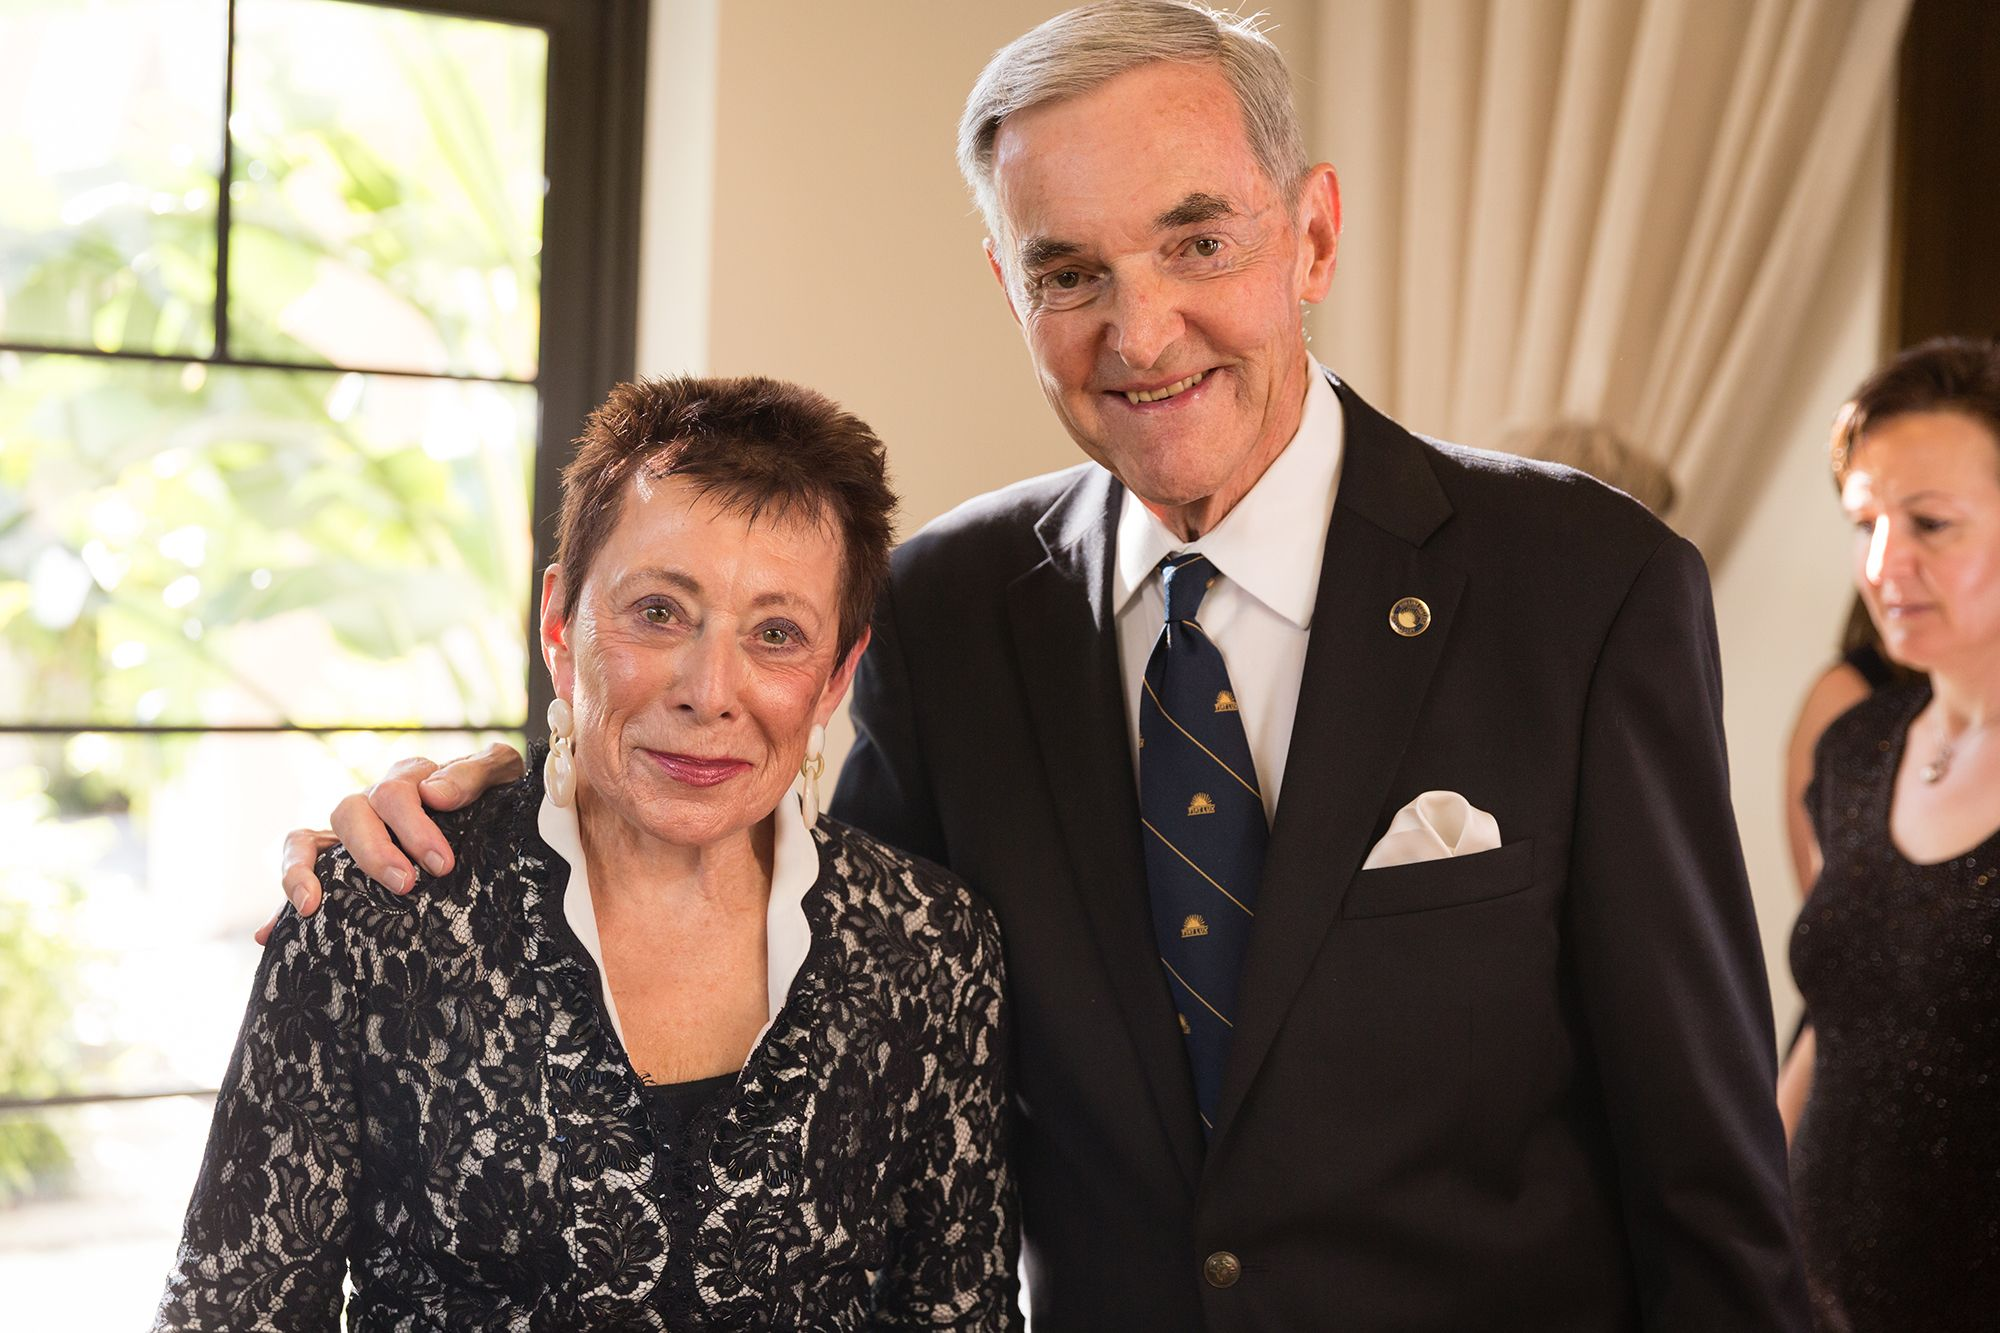 Frank Barker '52 '06H and his wife, Daryl Stamm Barker '53, at the inauguration of President Grant Cornwell at Rollins in 2015.